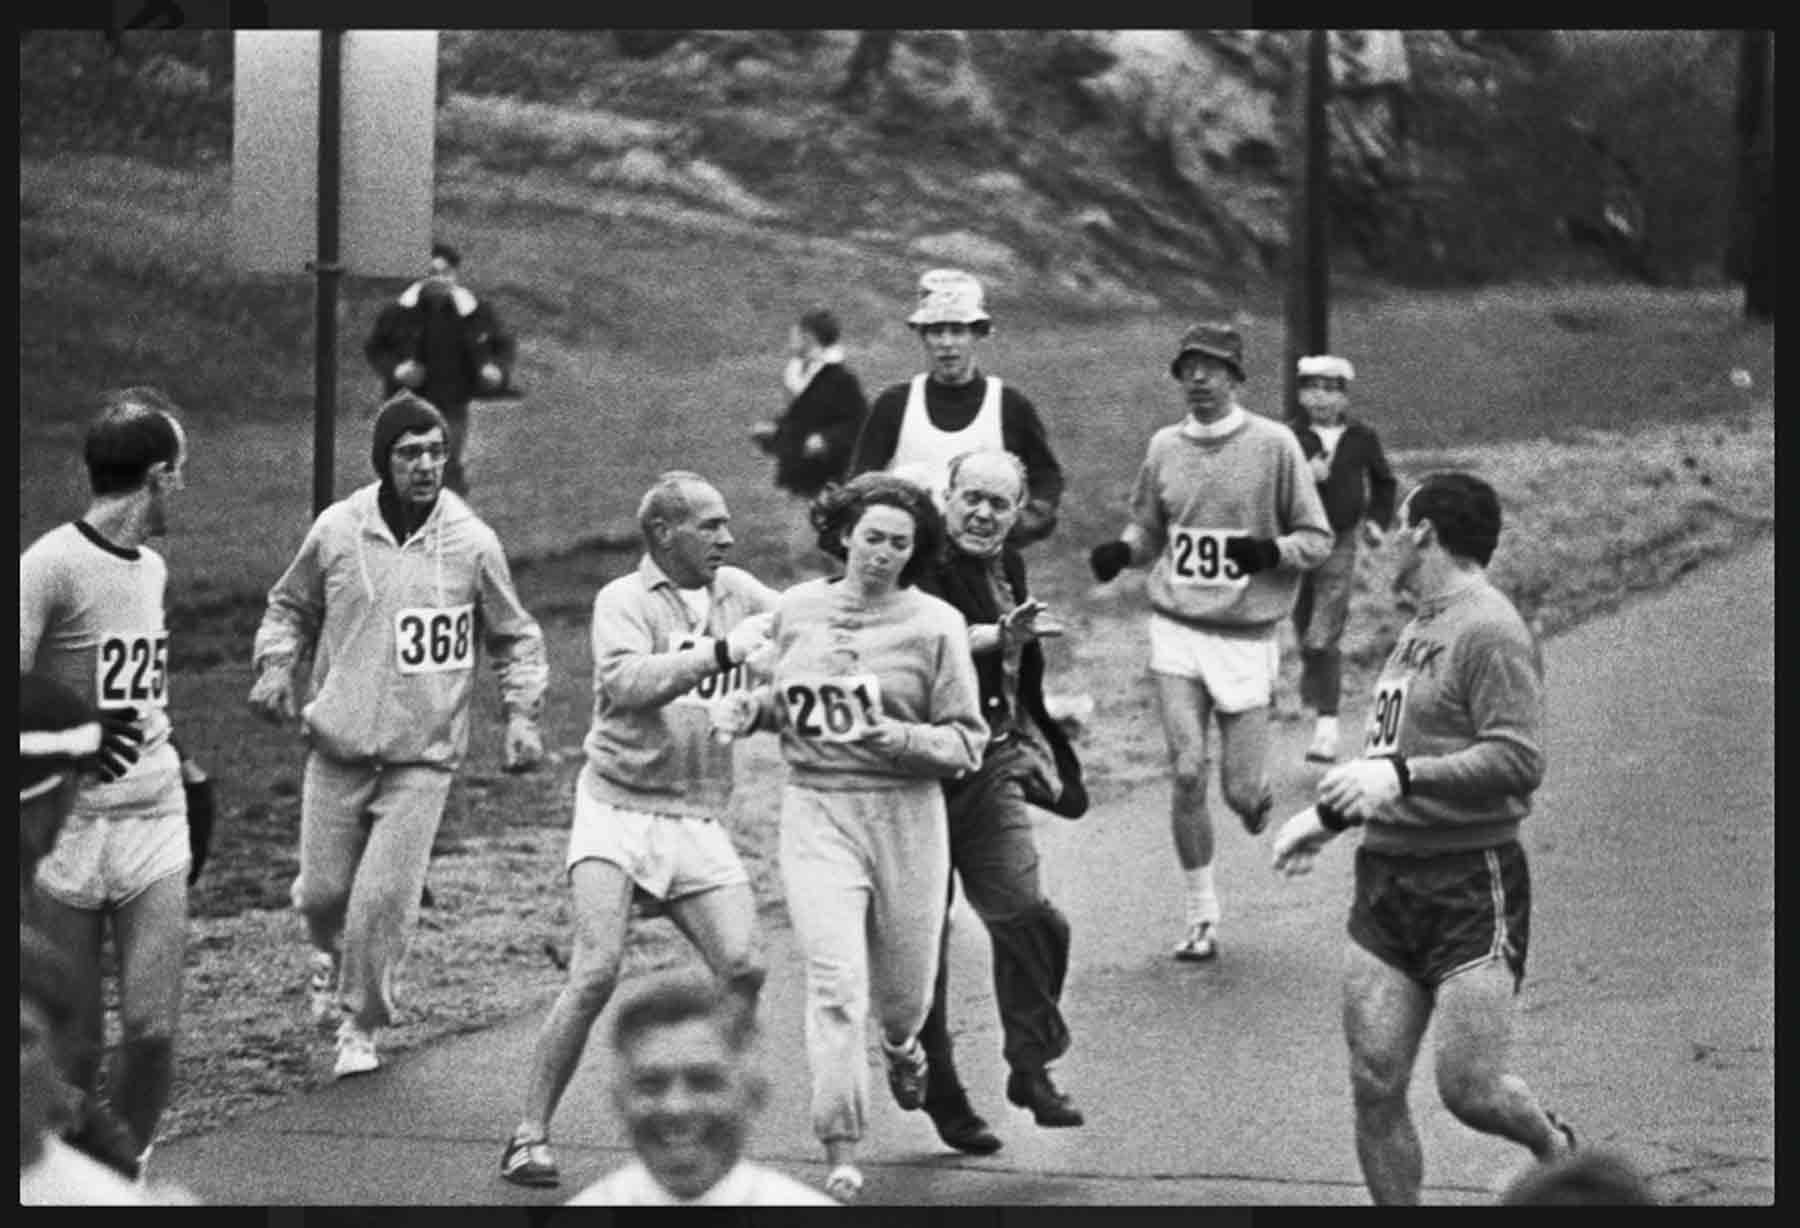 Kathrine Switzer Boston Marathon 1967